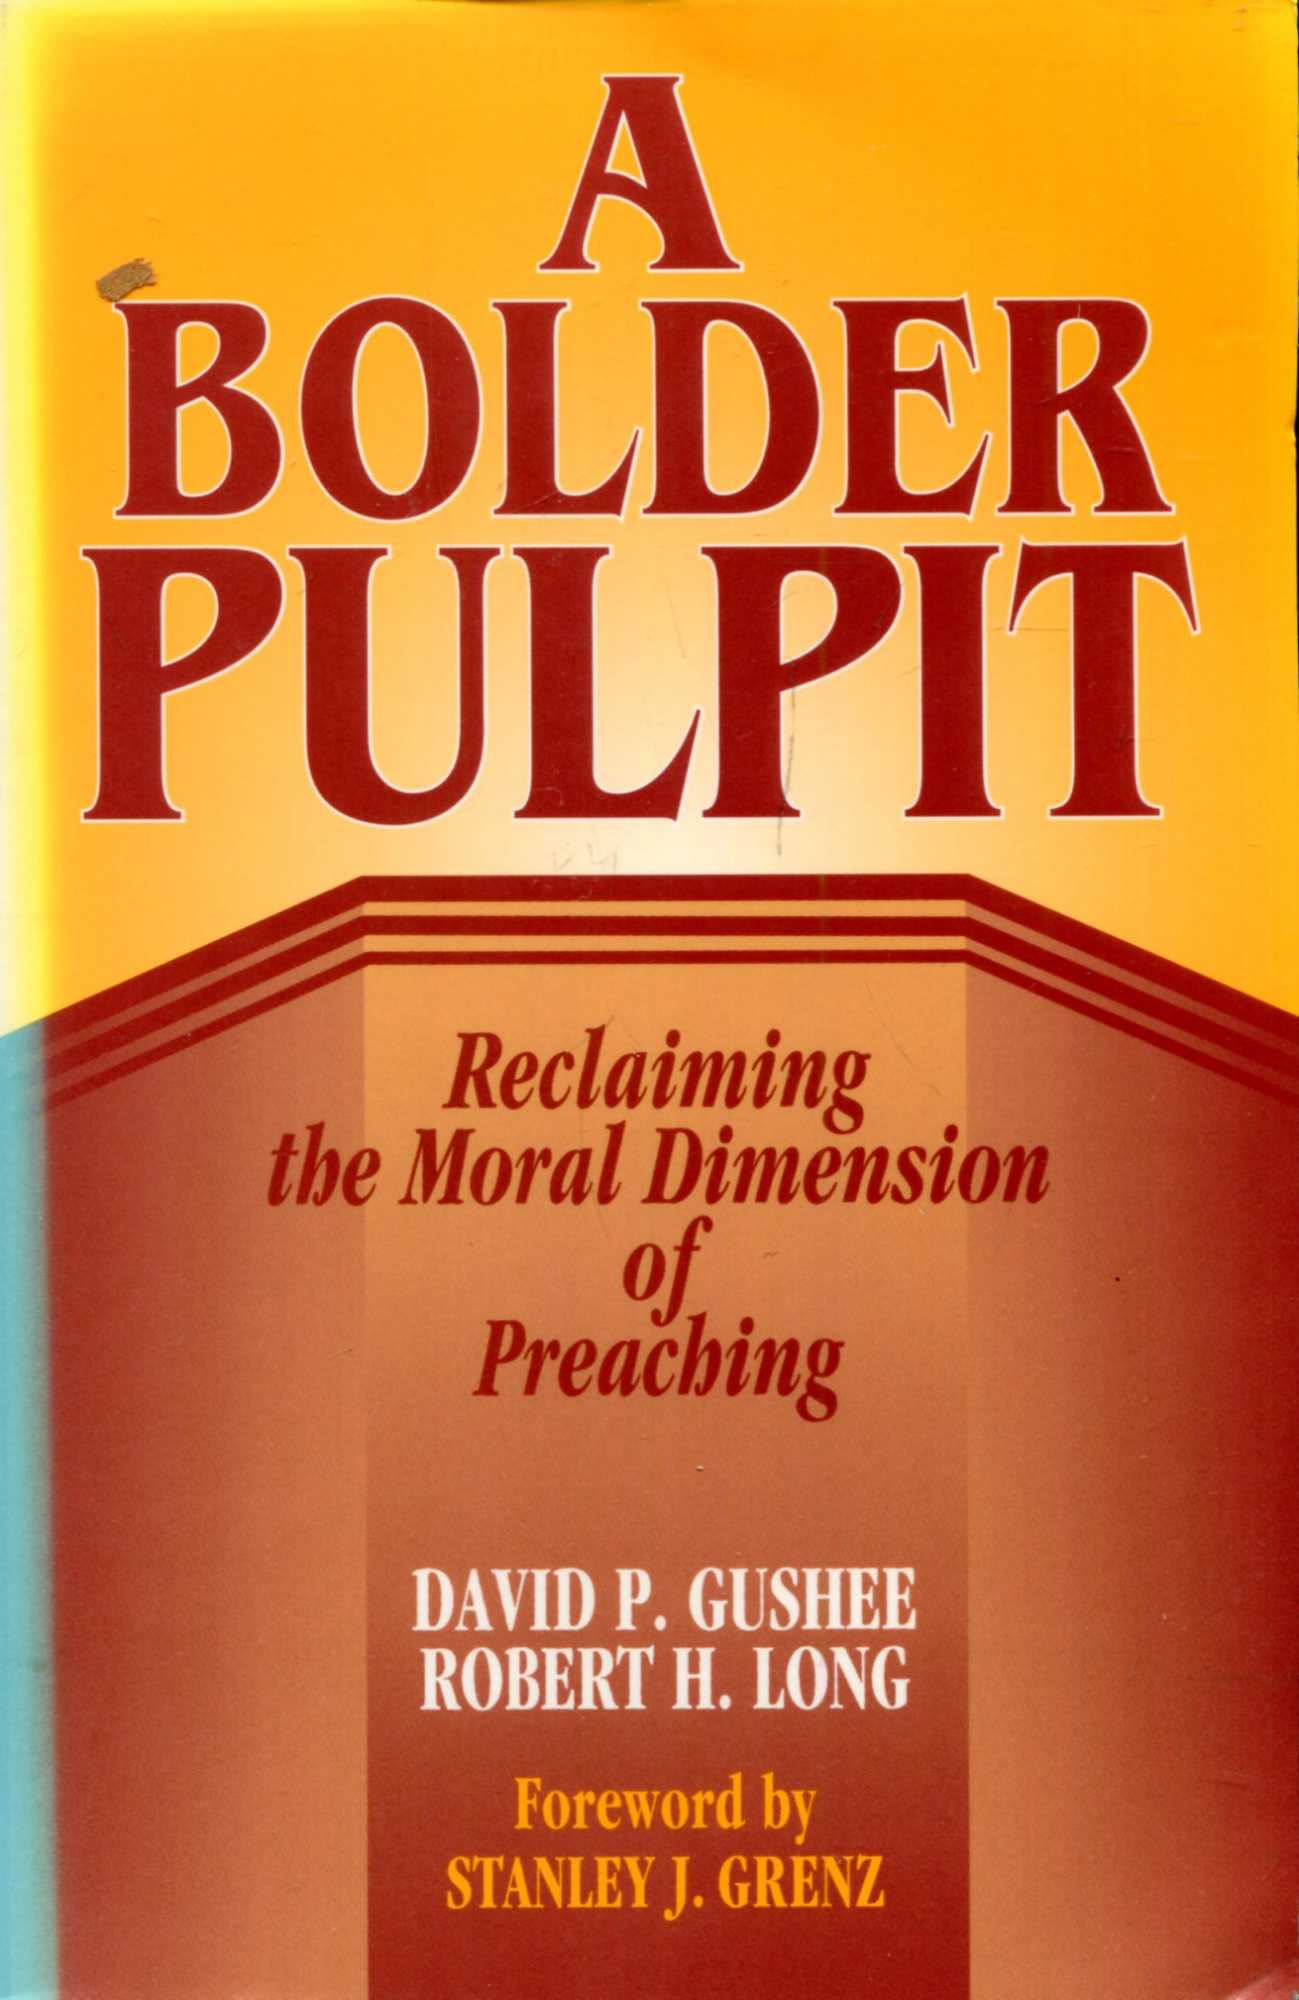 Image for A Bolder Pulpit: Reclaiming the Moral Dimension of Preaching